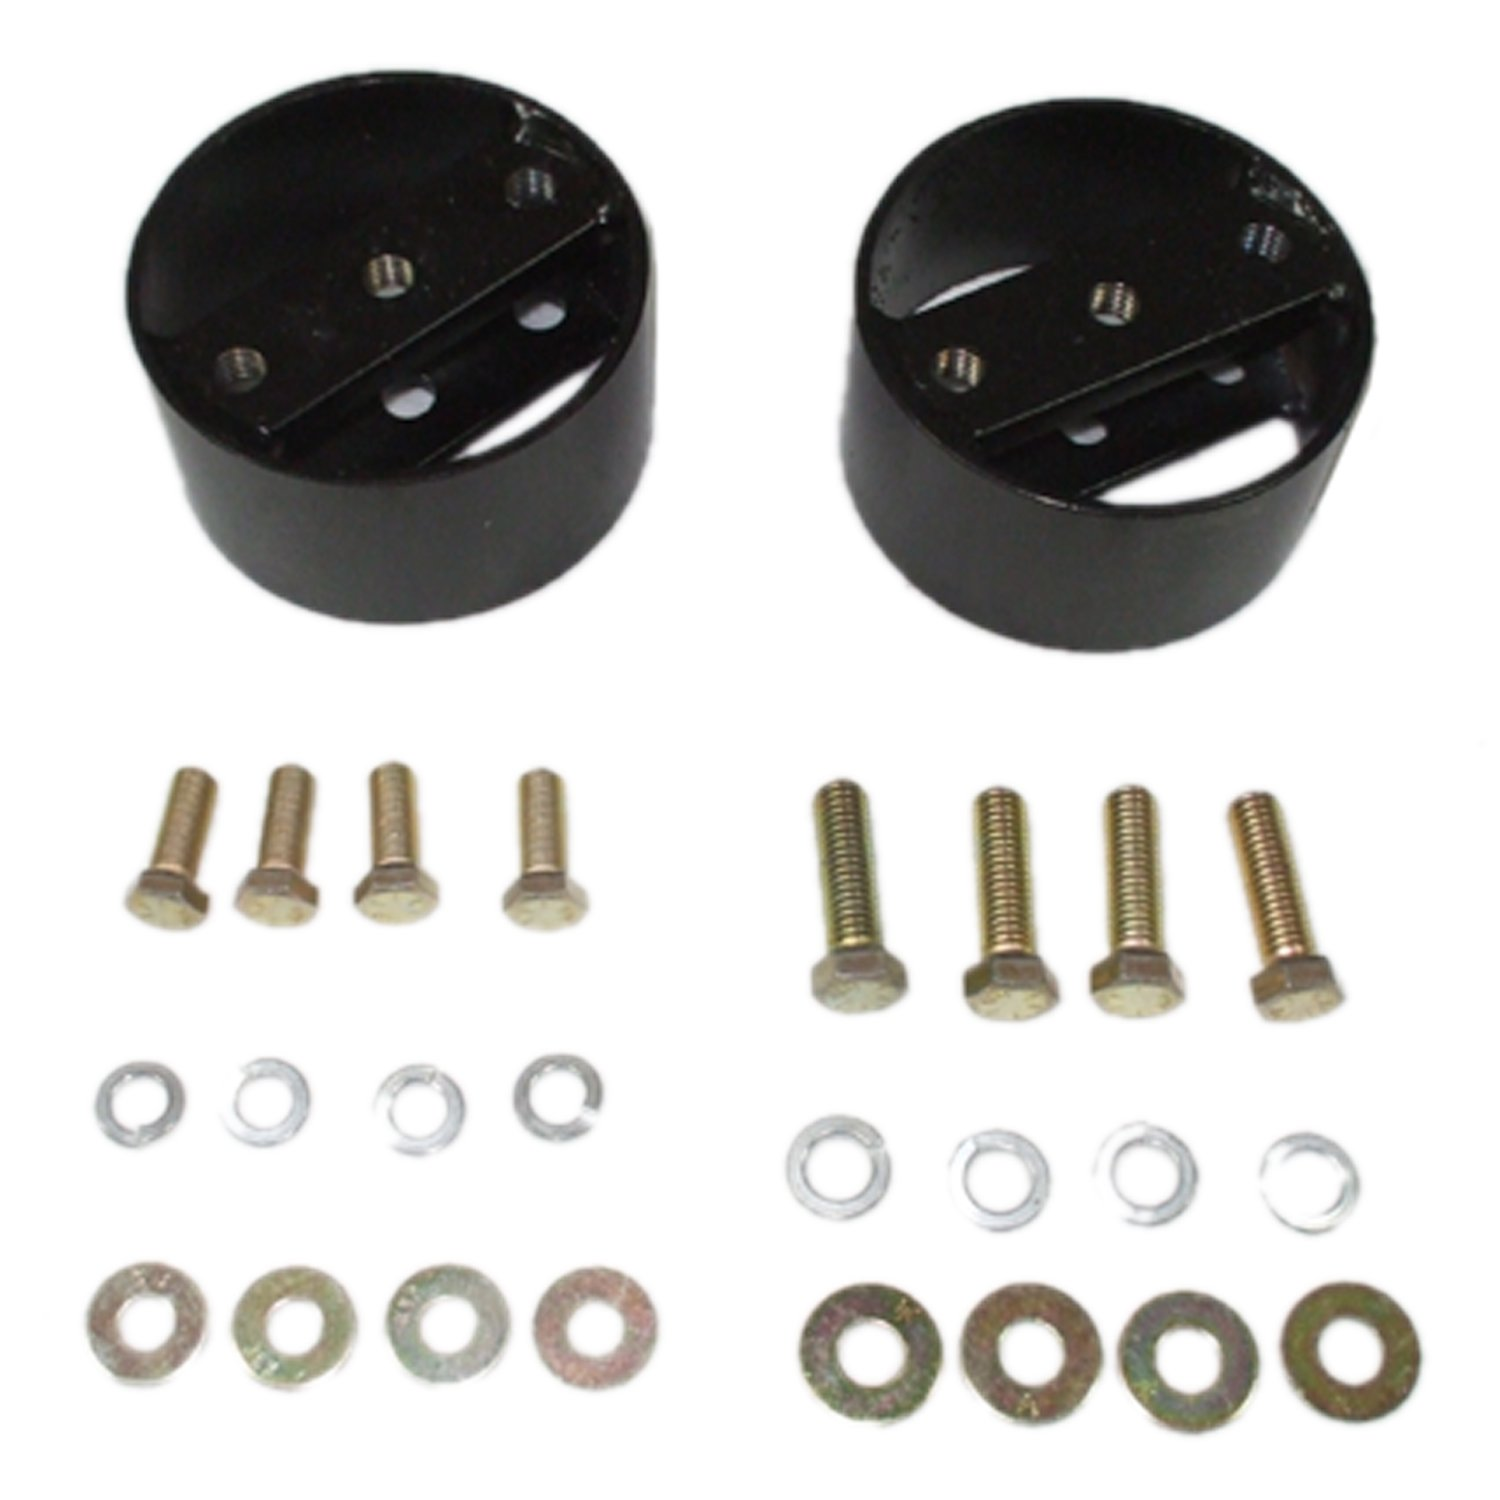 Firestone 2366 2 Axle and Leaf Mount Lift Spacer Kit Firestone Ride-Rite